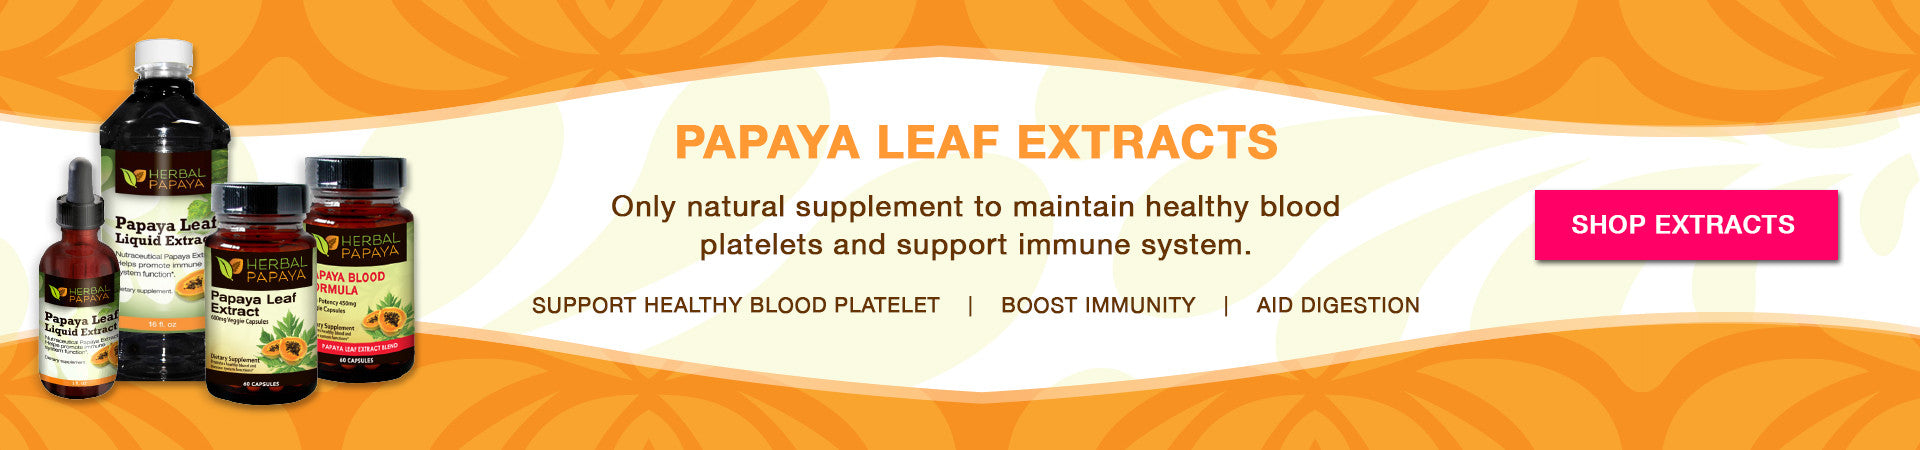 papaya leaf extracts and papaya leaf juice, papaya leaf supplements